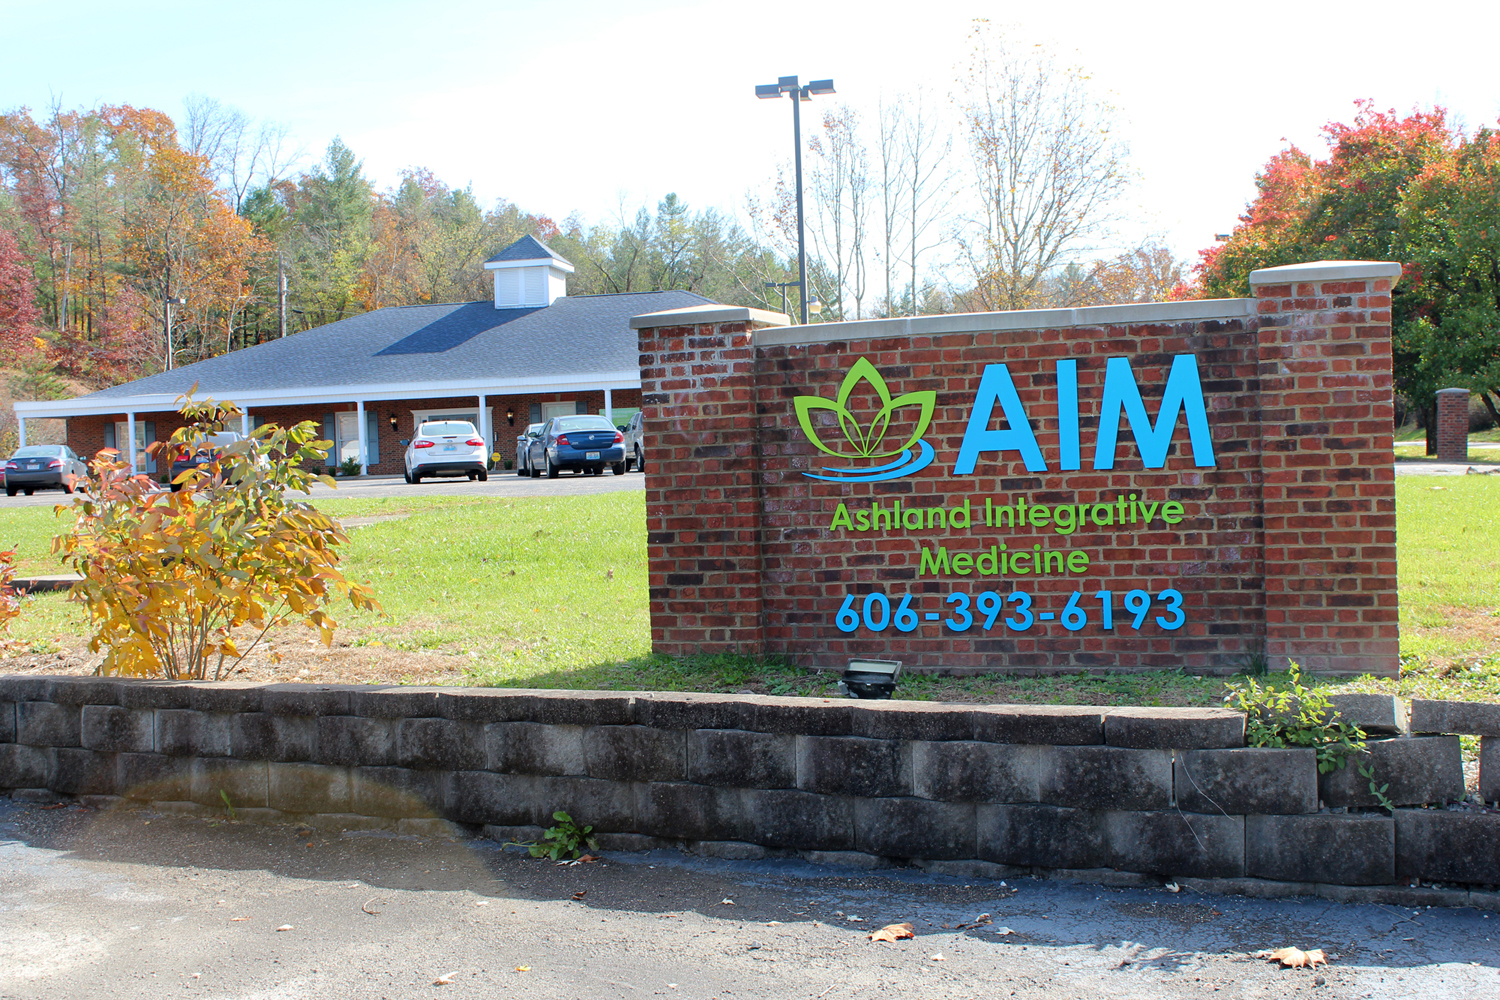 Ashland Integrative Medicine